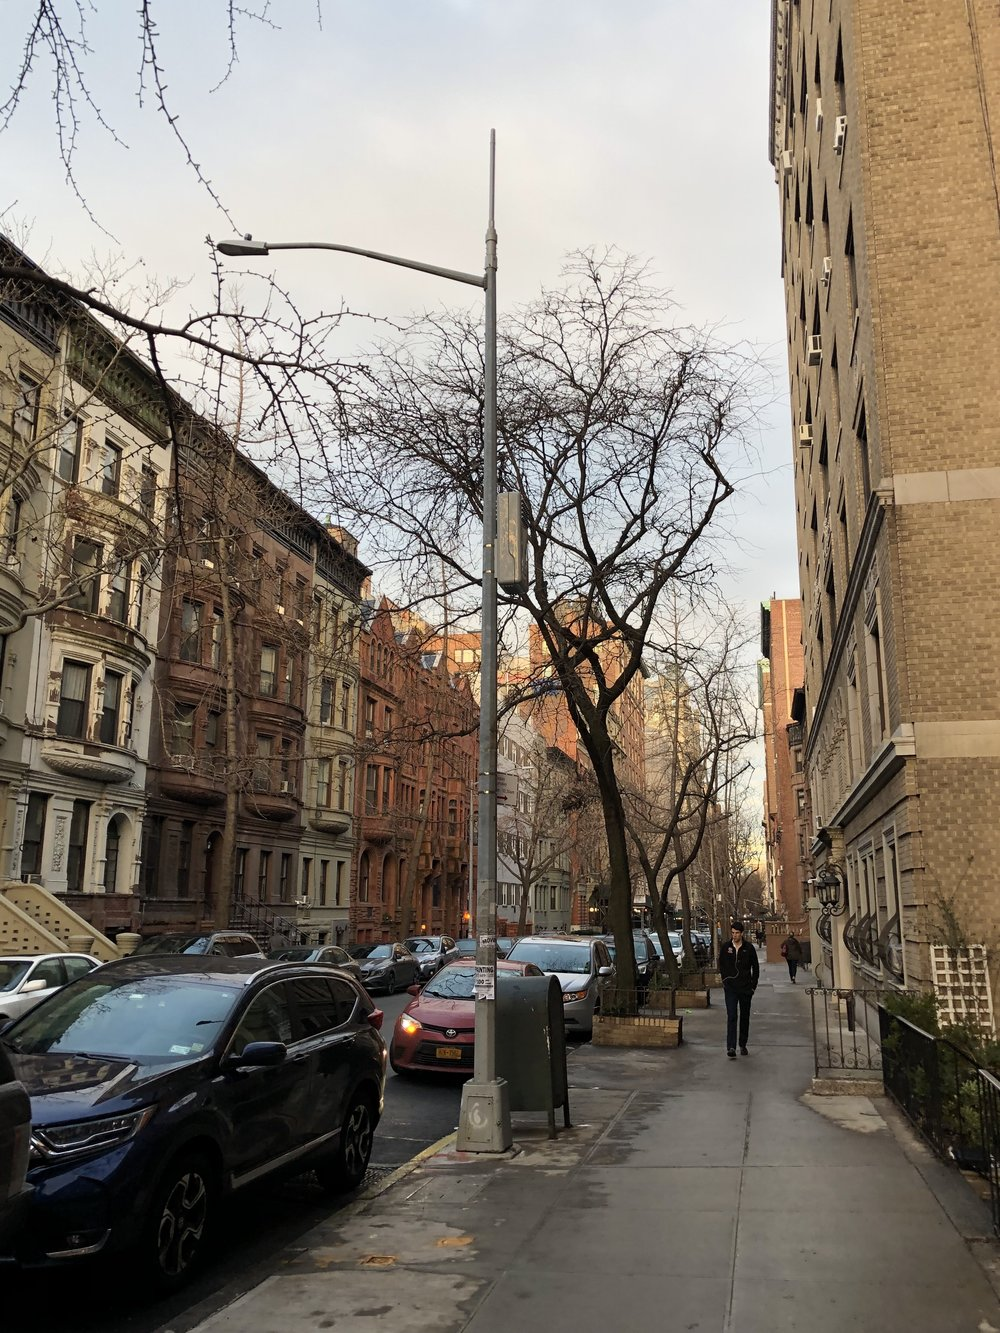 Here is the same light pole. Notice how close this antenna is to the 6th and 7th floor windows of this high-end building. Photo ©2019